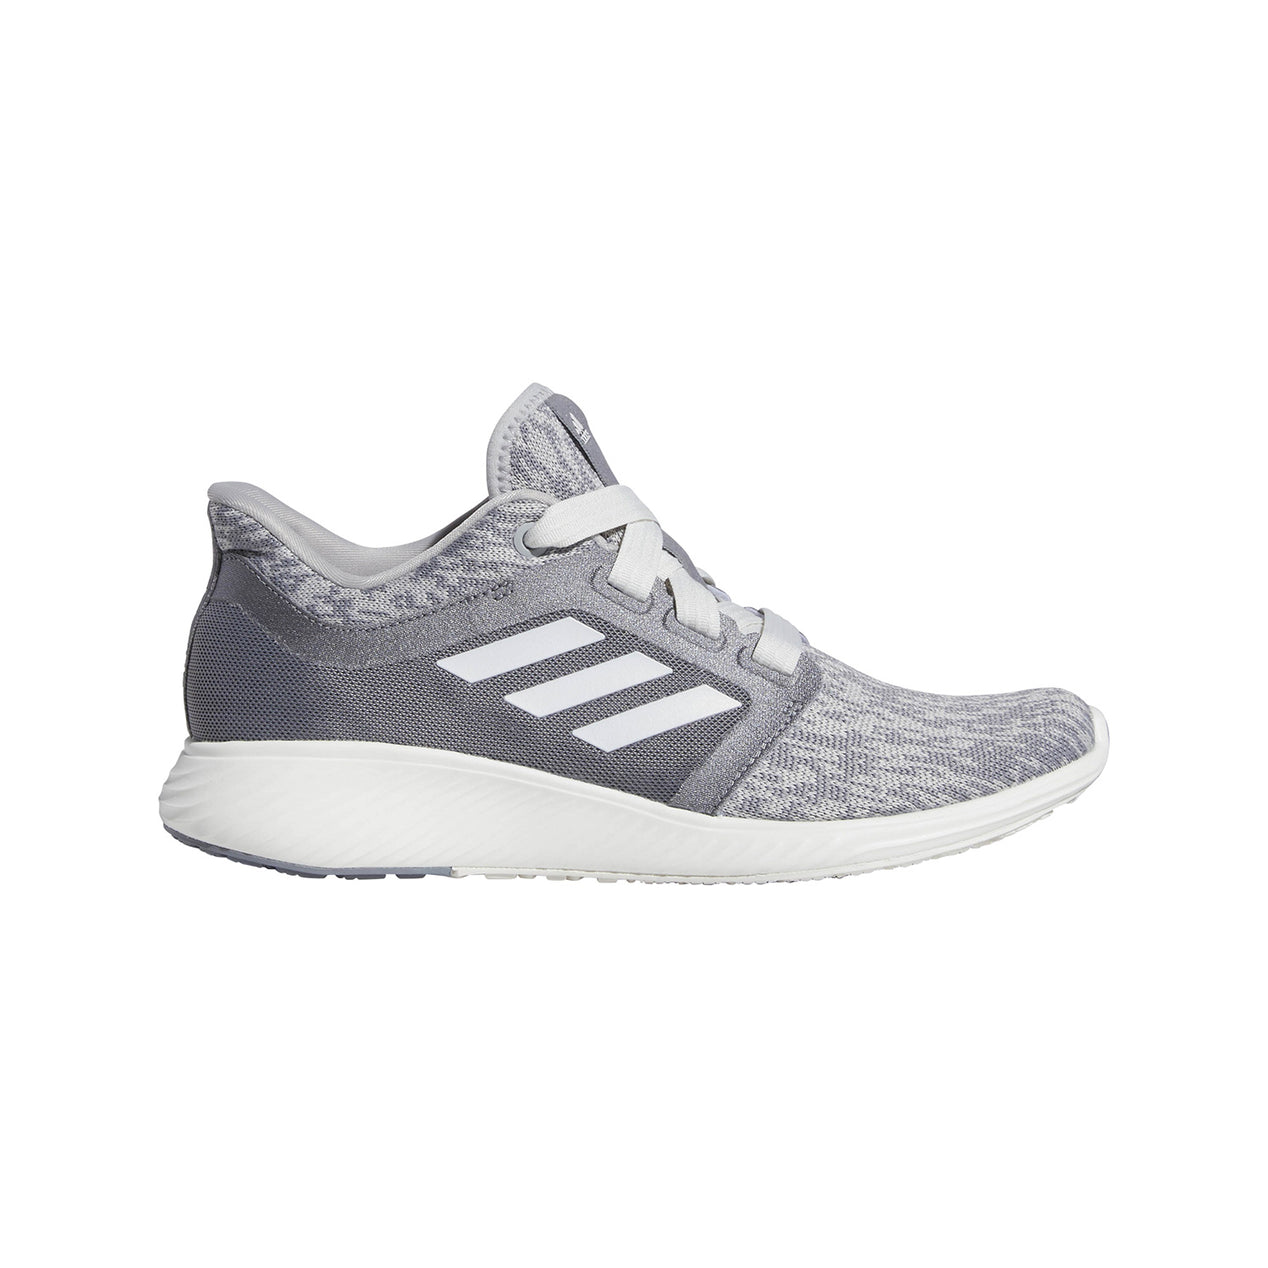 sports shoes f4dd0 919f2 Adidas Edge Lux 3 Running Shoes - Womens